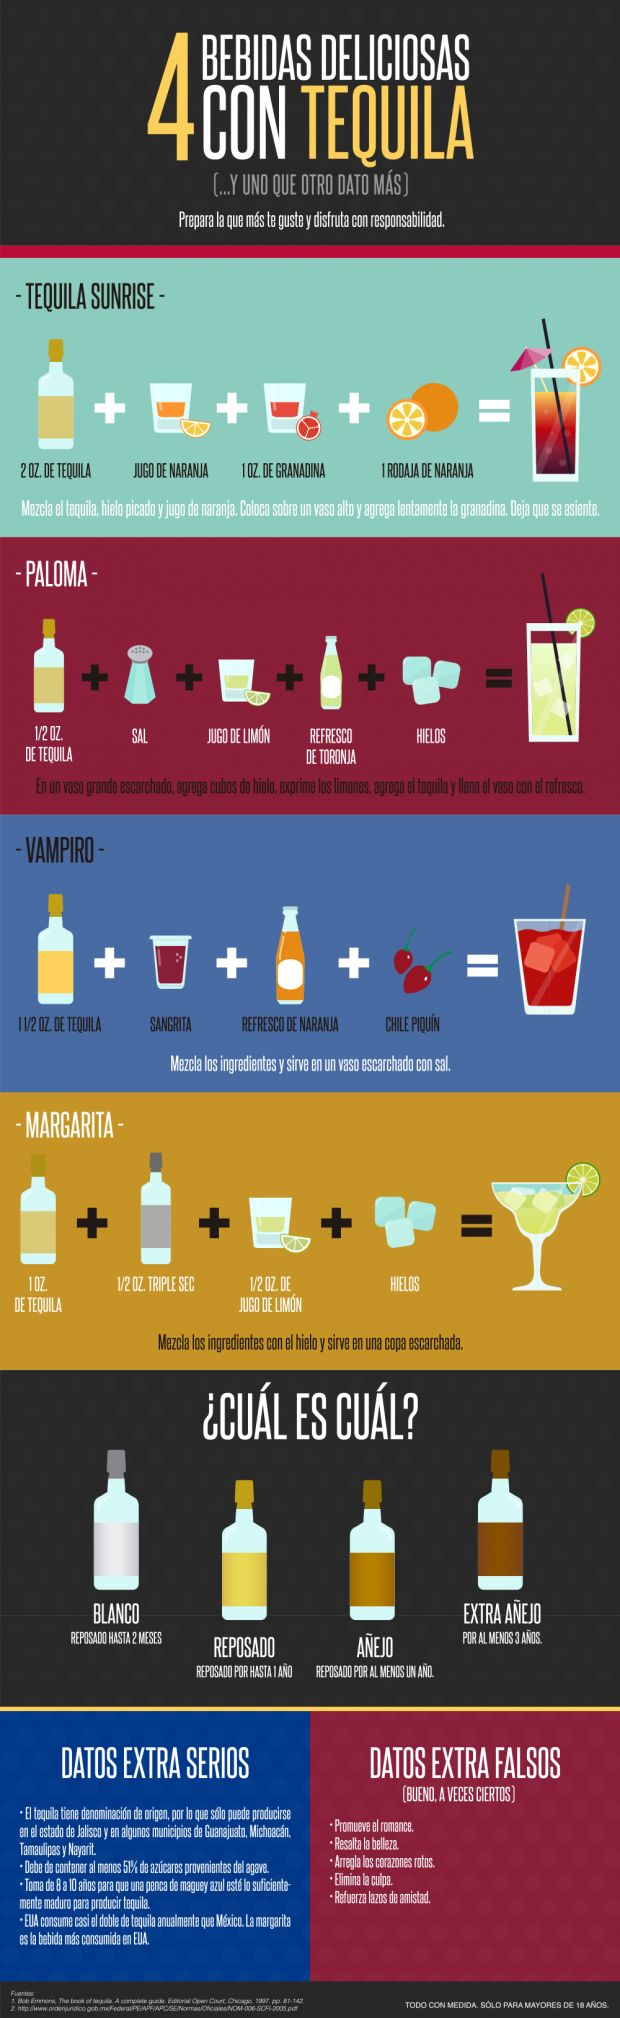 150205_Tequila-e1424473200120.png (620×2018)